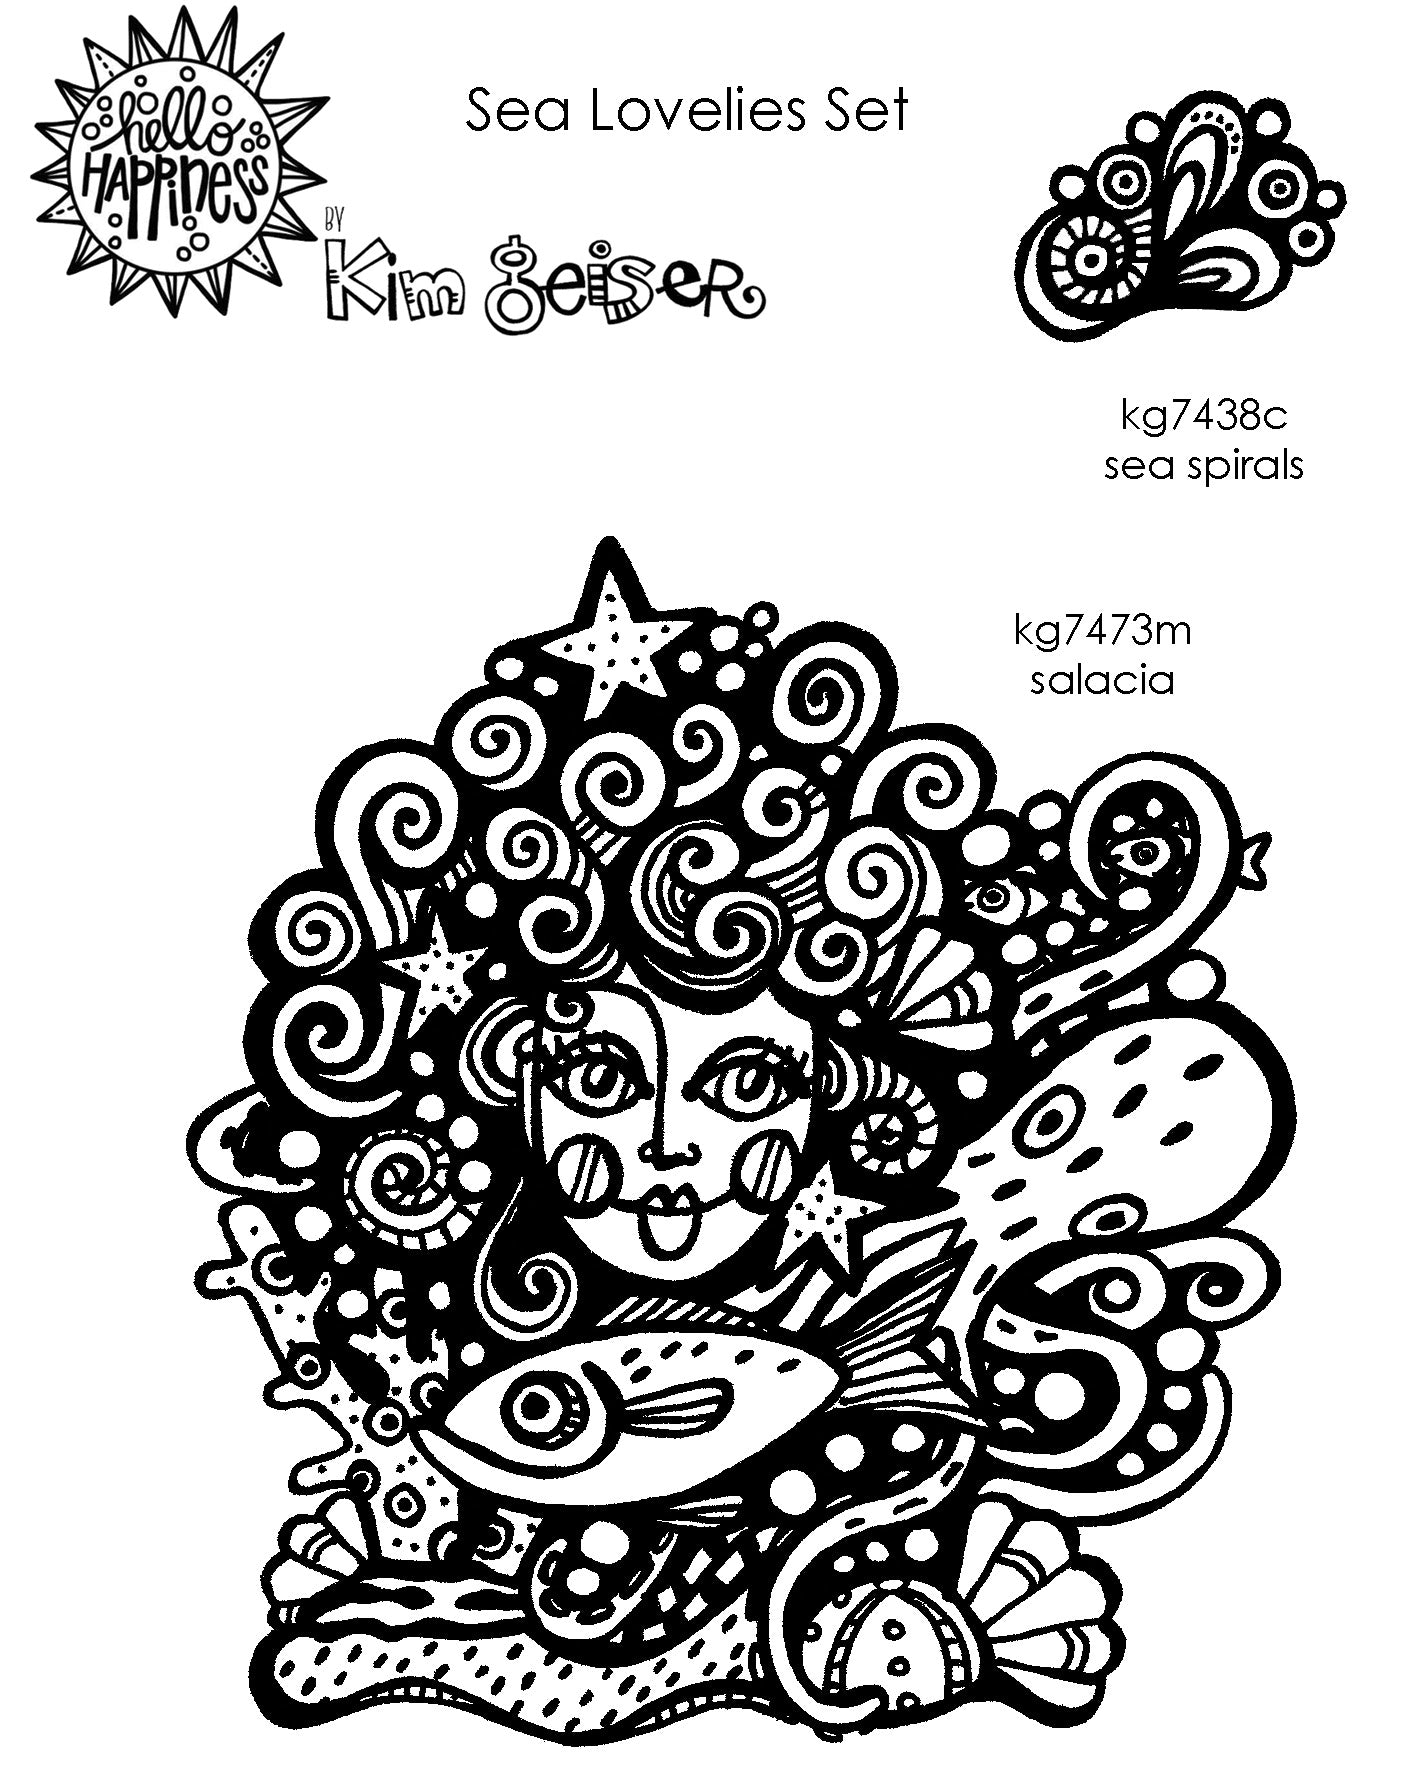 Kim Geiser | KGSL02 - Sea Lovelies Set - Rubber Art Stamps